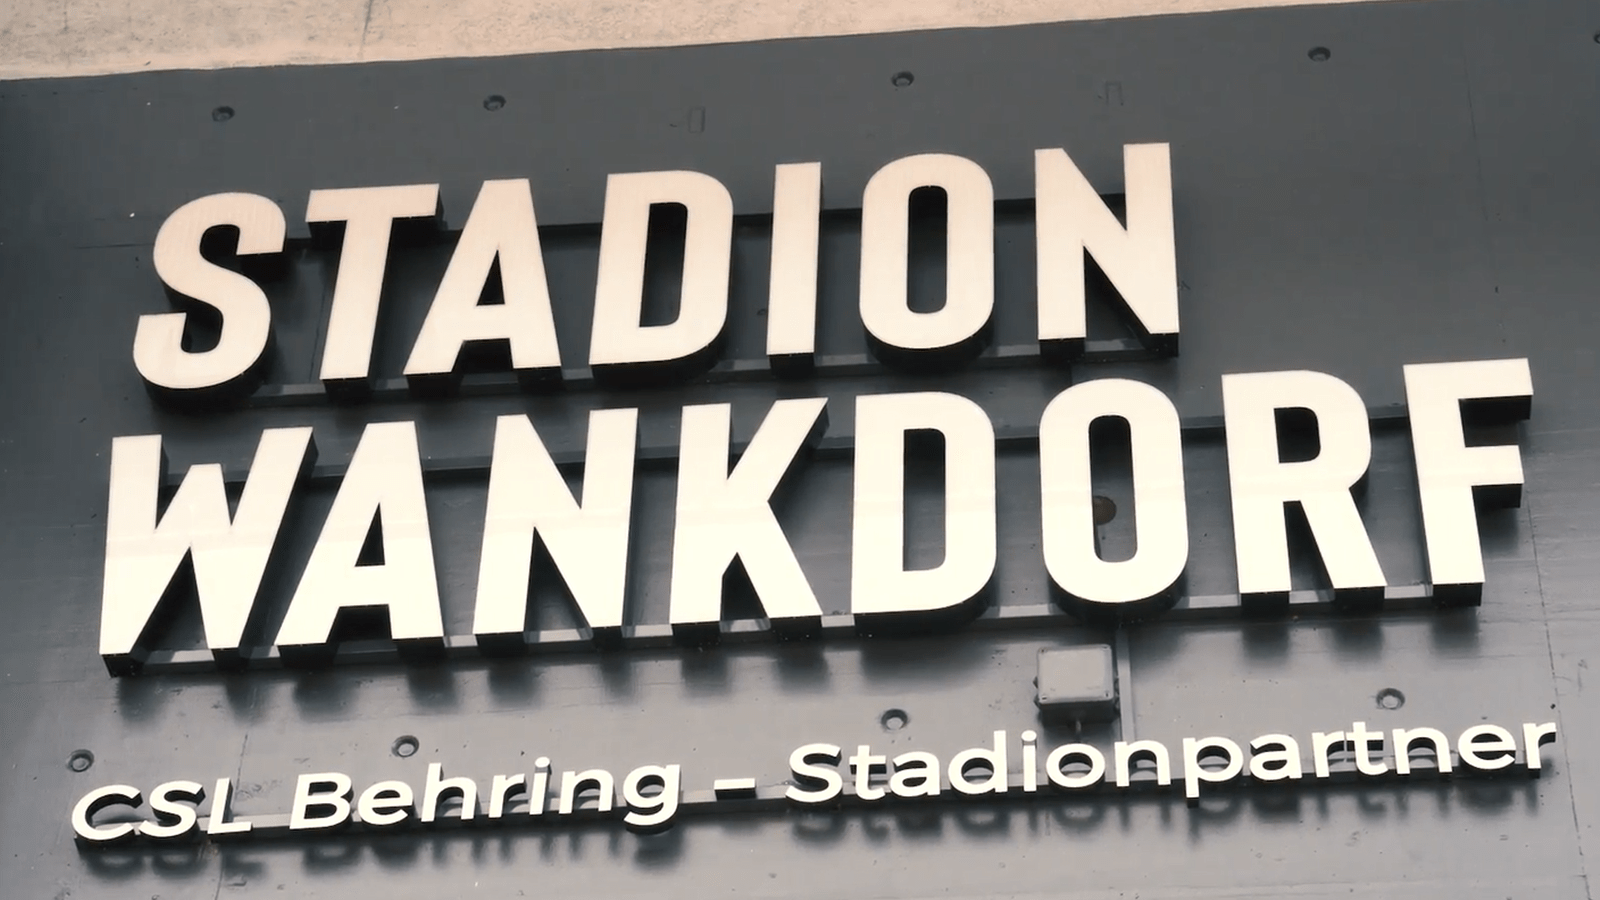 Sign at Stadion Wankdorf in Bern, Switzerland